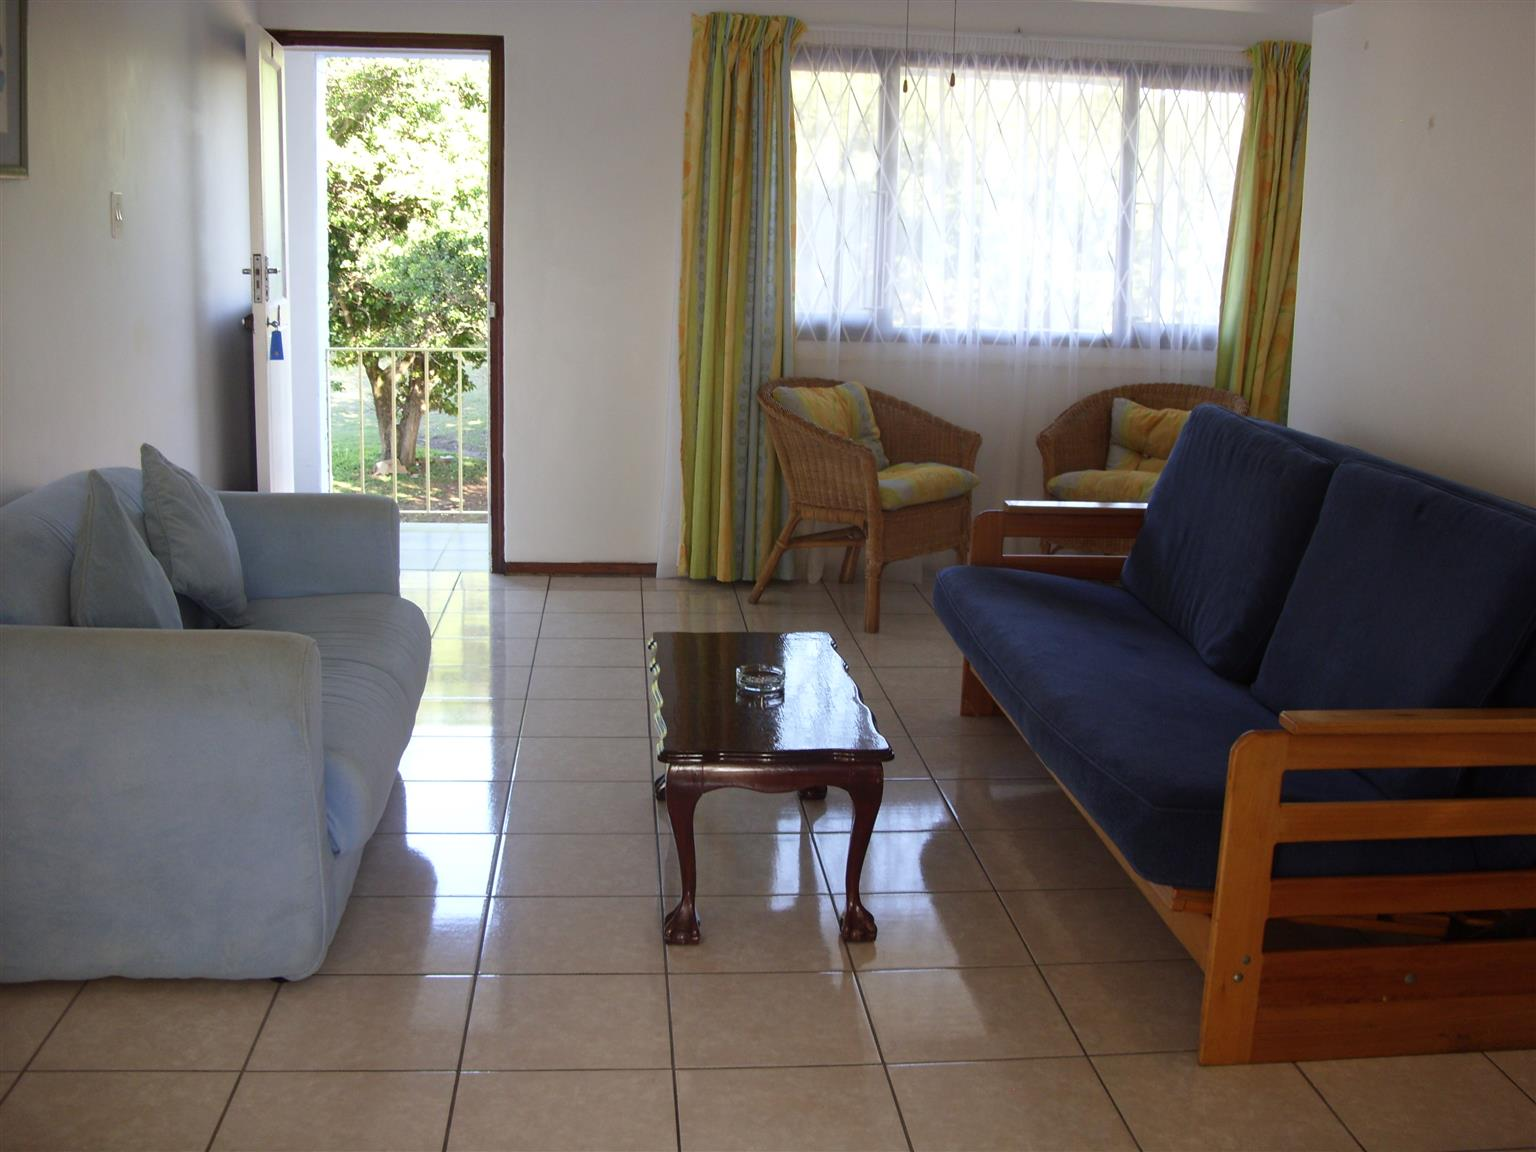 Shelly Beach 1 Bedroom Furnished Flat St Michaels-On-Sea R4100 pm AVAILABLE JANUARY - FIRST FLOOR WITH SLIGHT SEA VIEWS